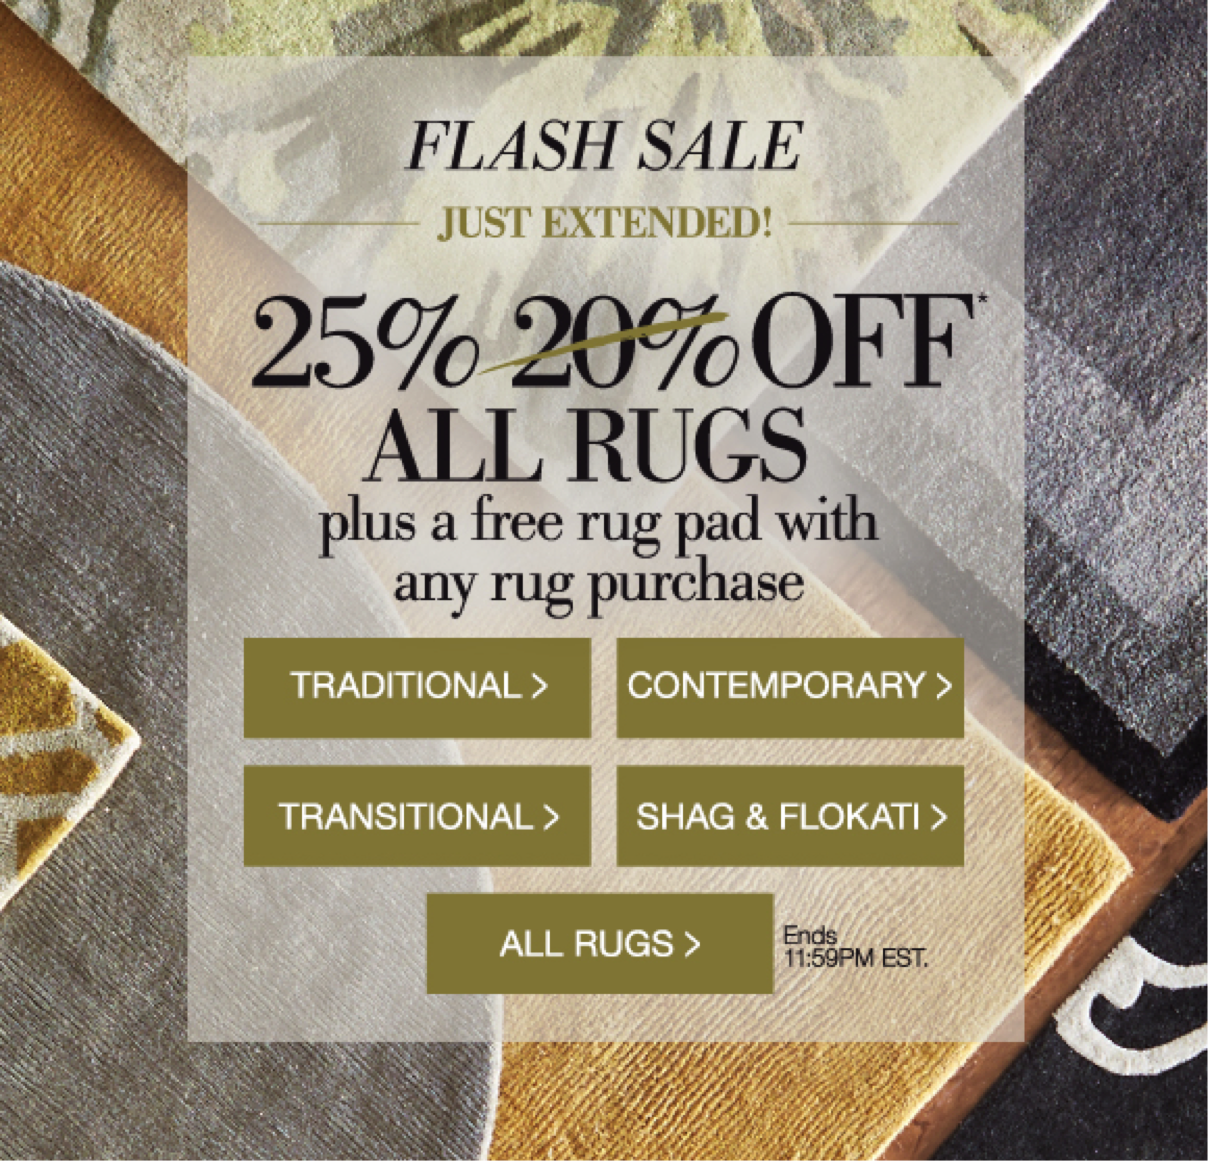 A Flash sale in Home Decorators Collection